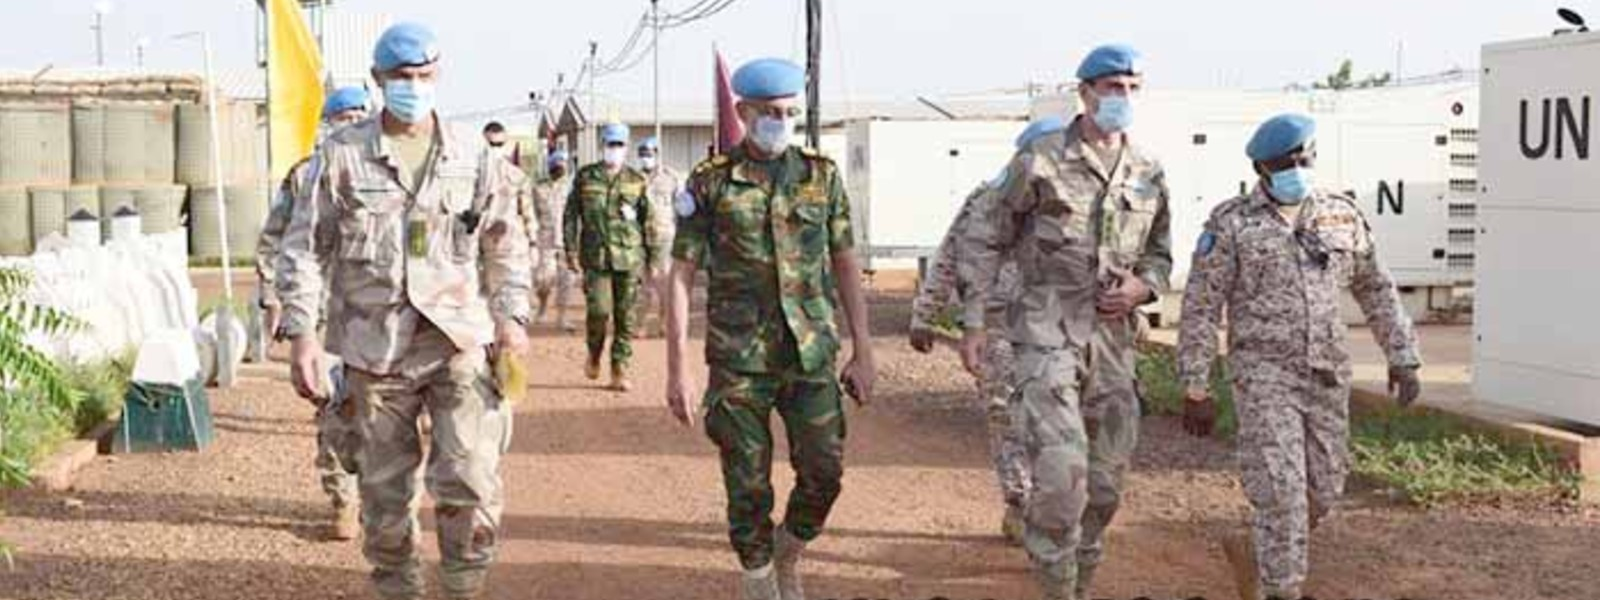 MINUSMA Force Commander Compliments SL Convoy in Mali